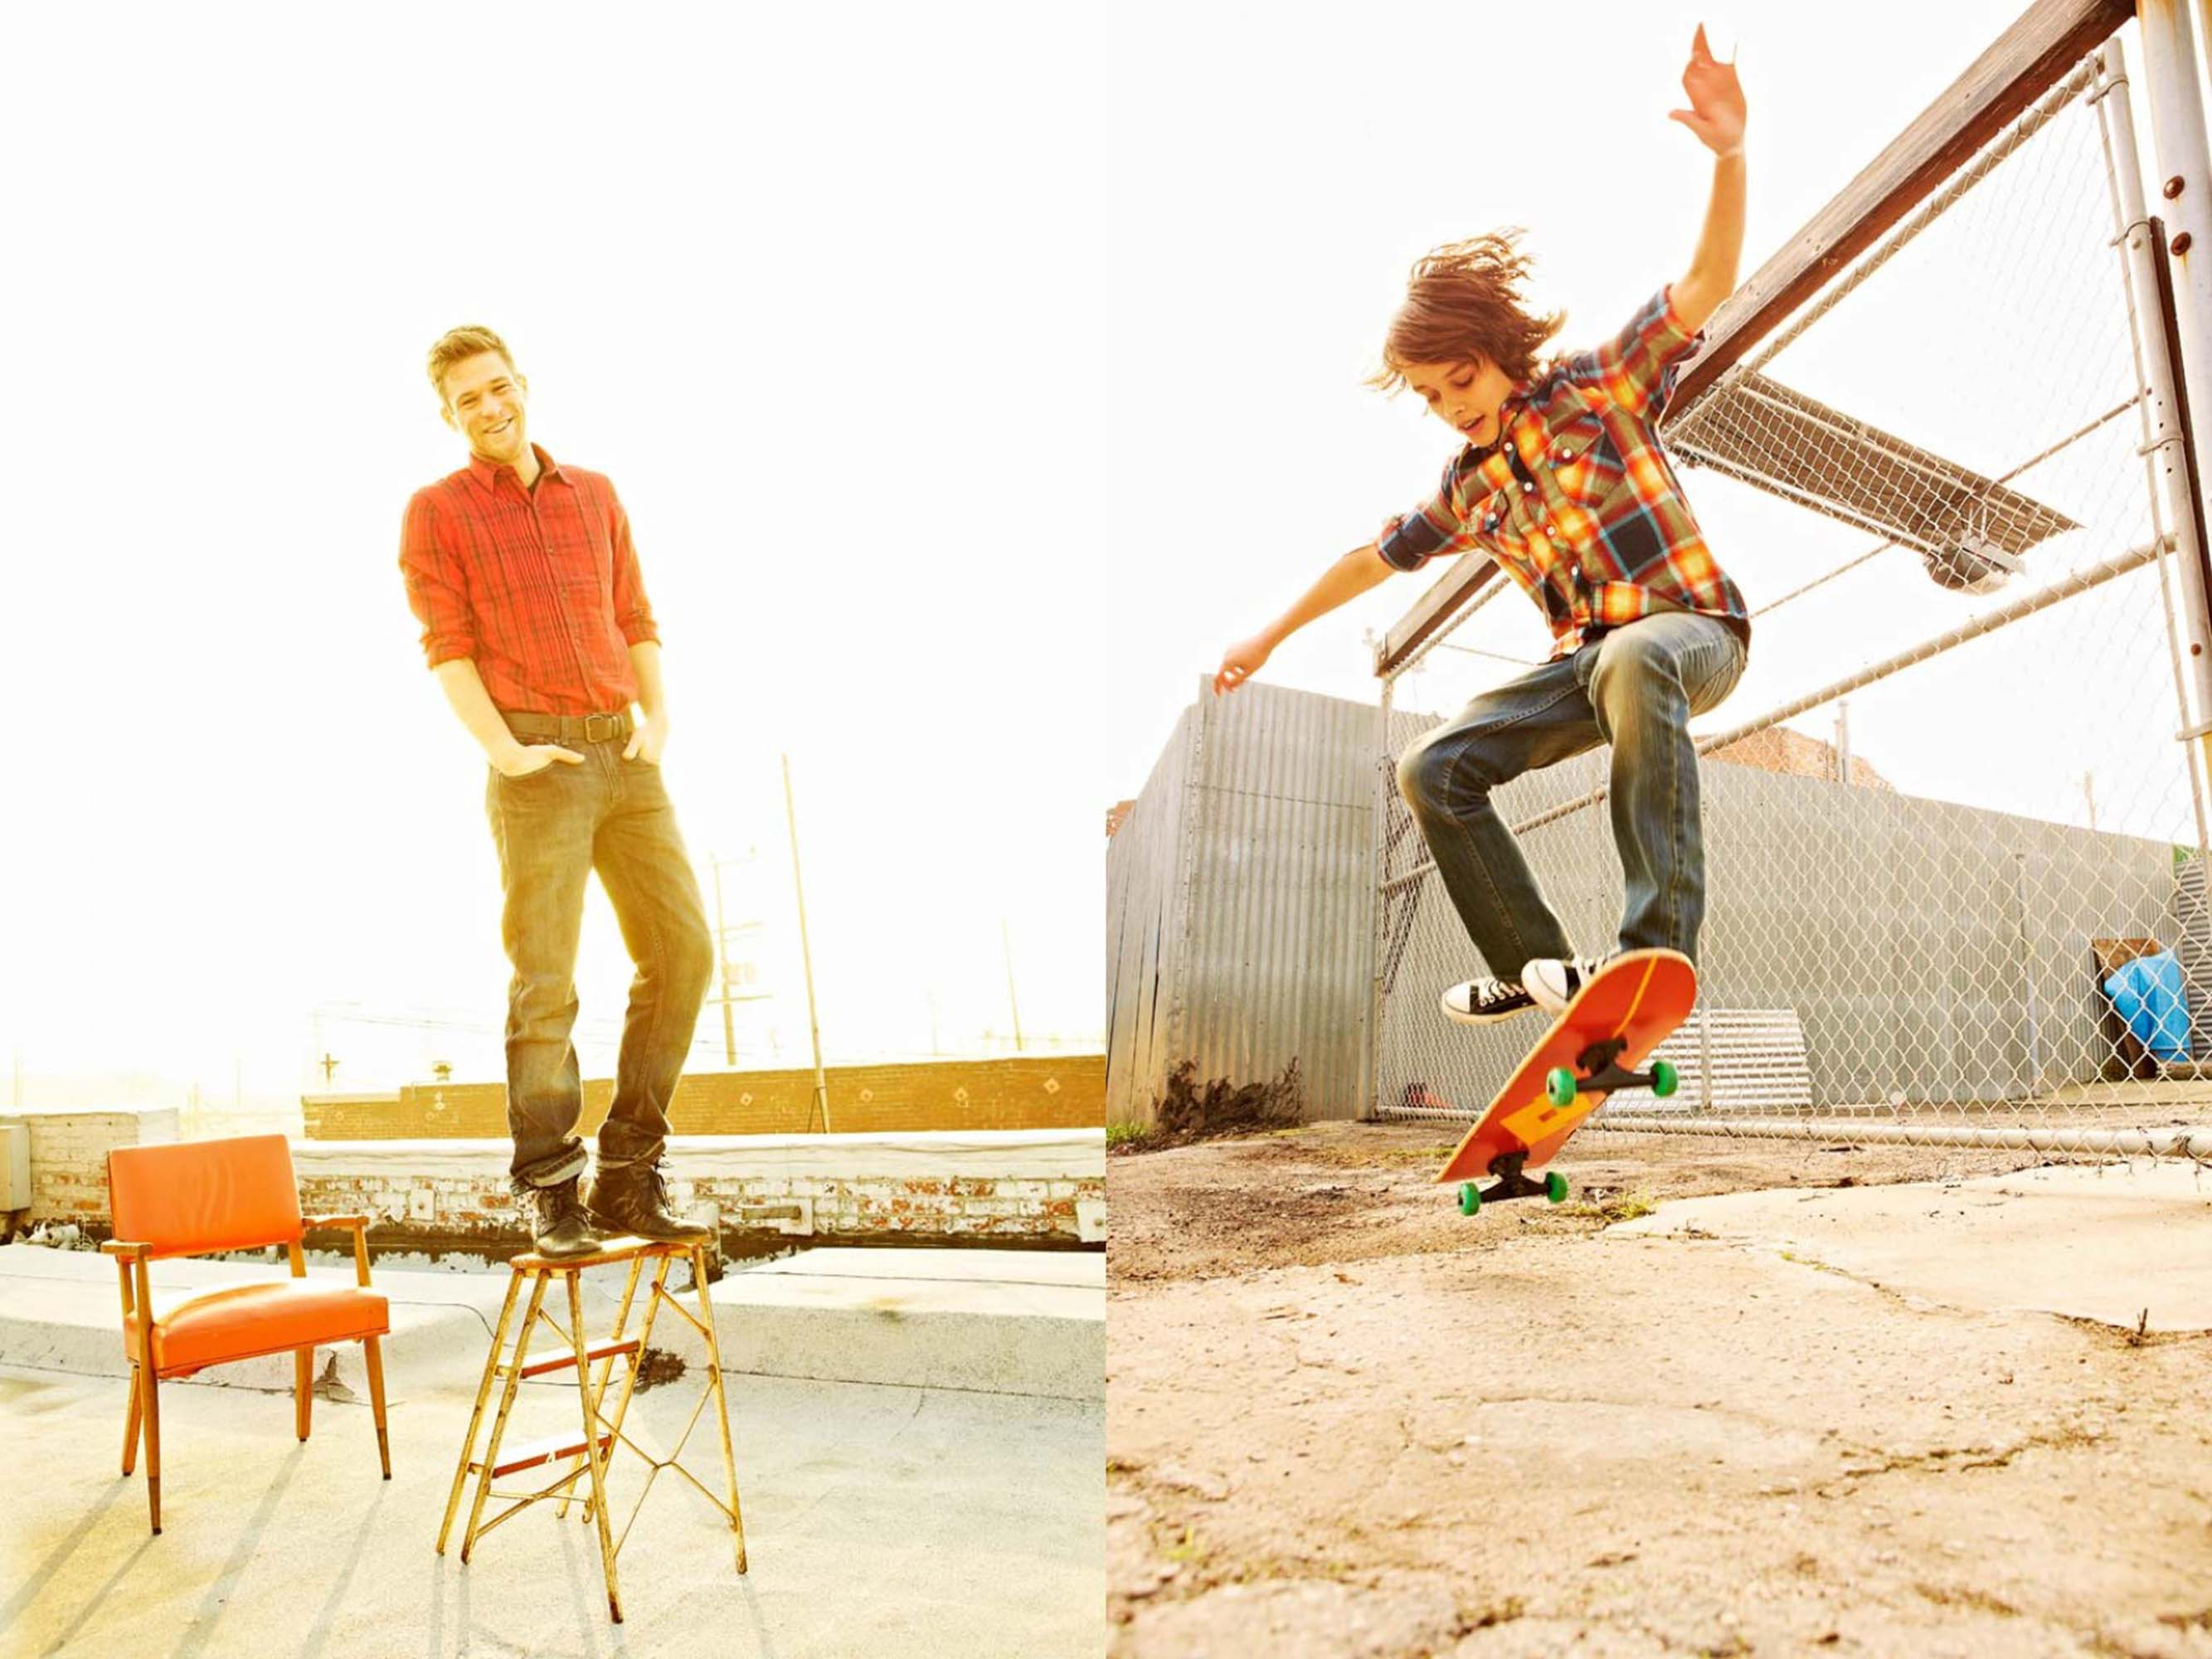 Man skateboarding and another man standing on a ladder